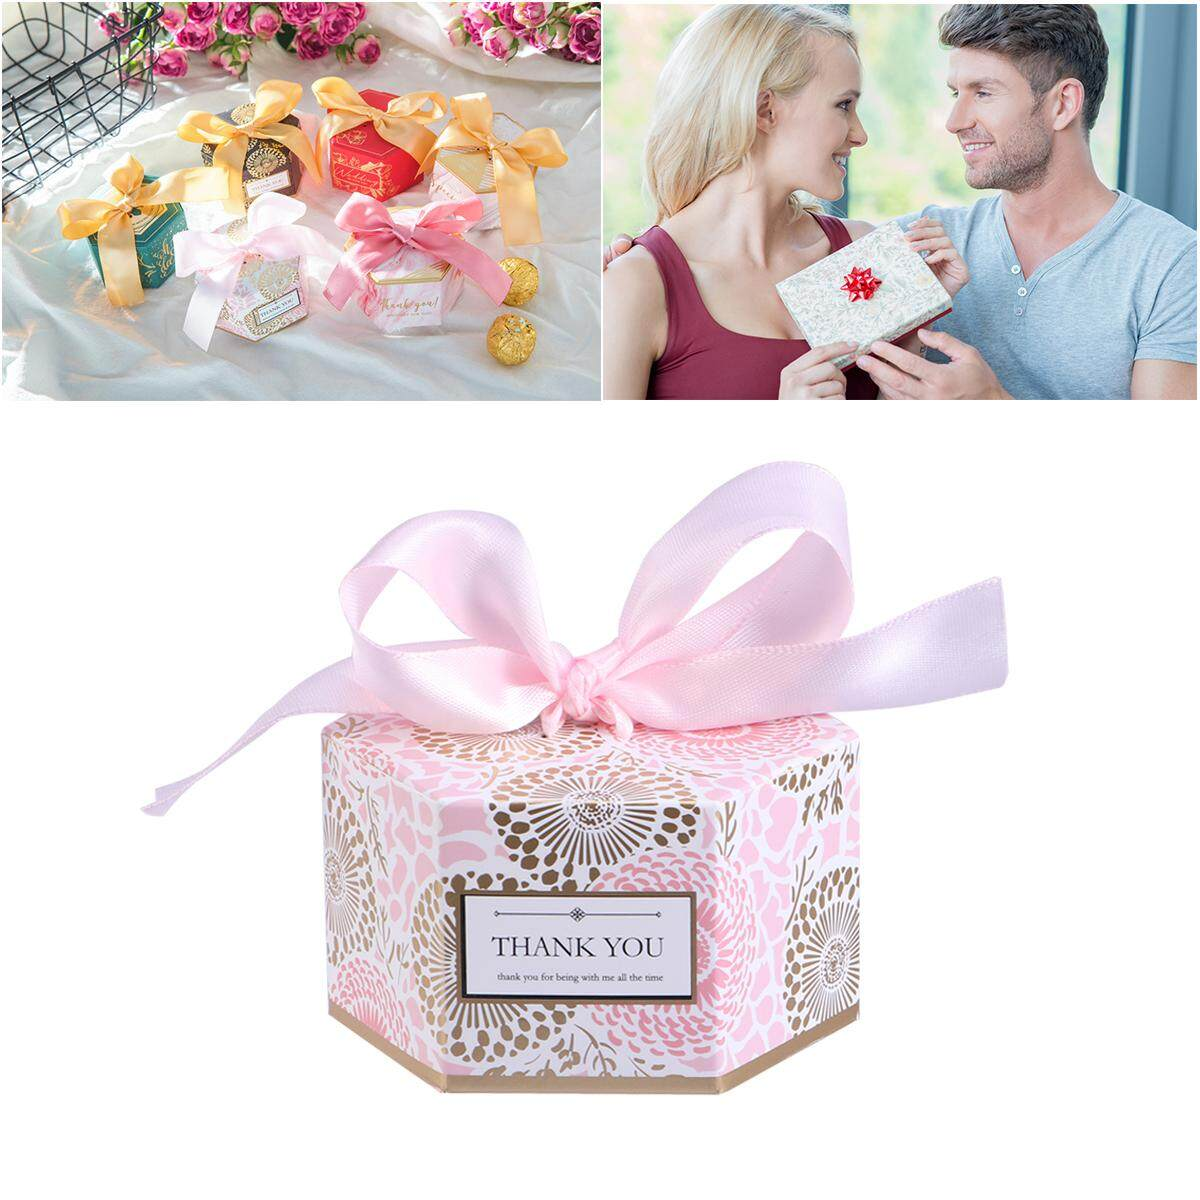 Eshopdeal 20pcs Candy Box Hexagonal Gift Box With Ribbon Decent Chocolate Treat Boxes Wedding Party Favors Small Size